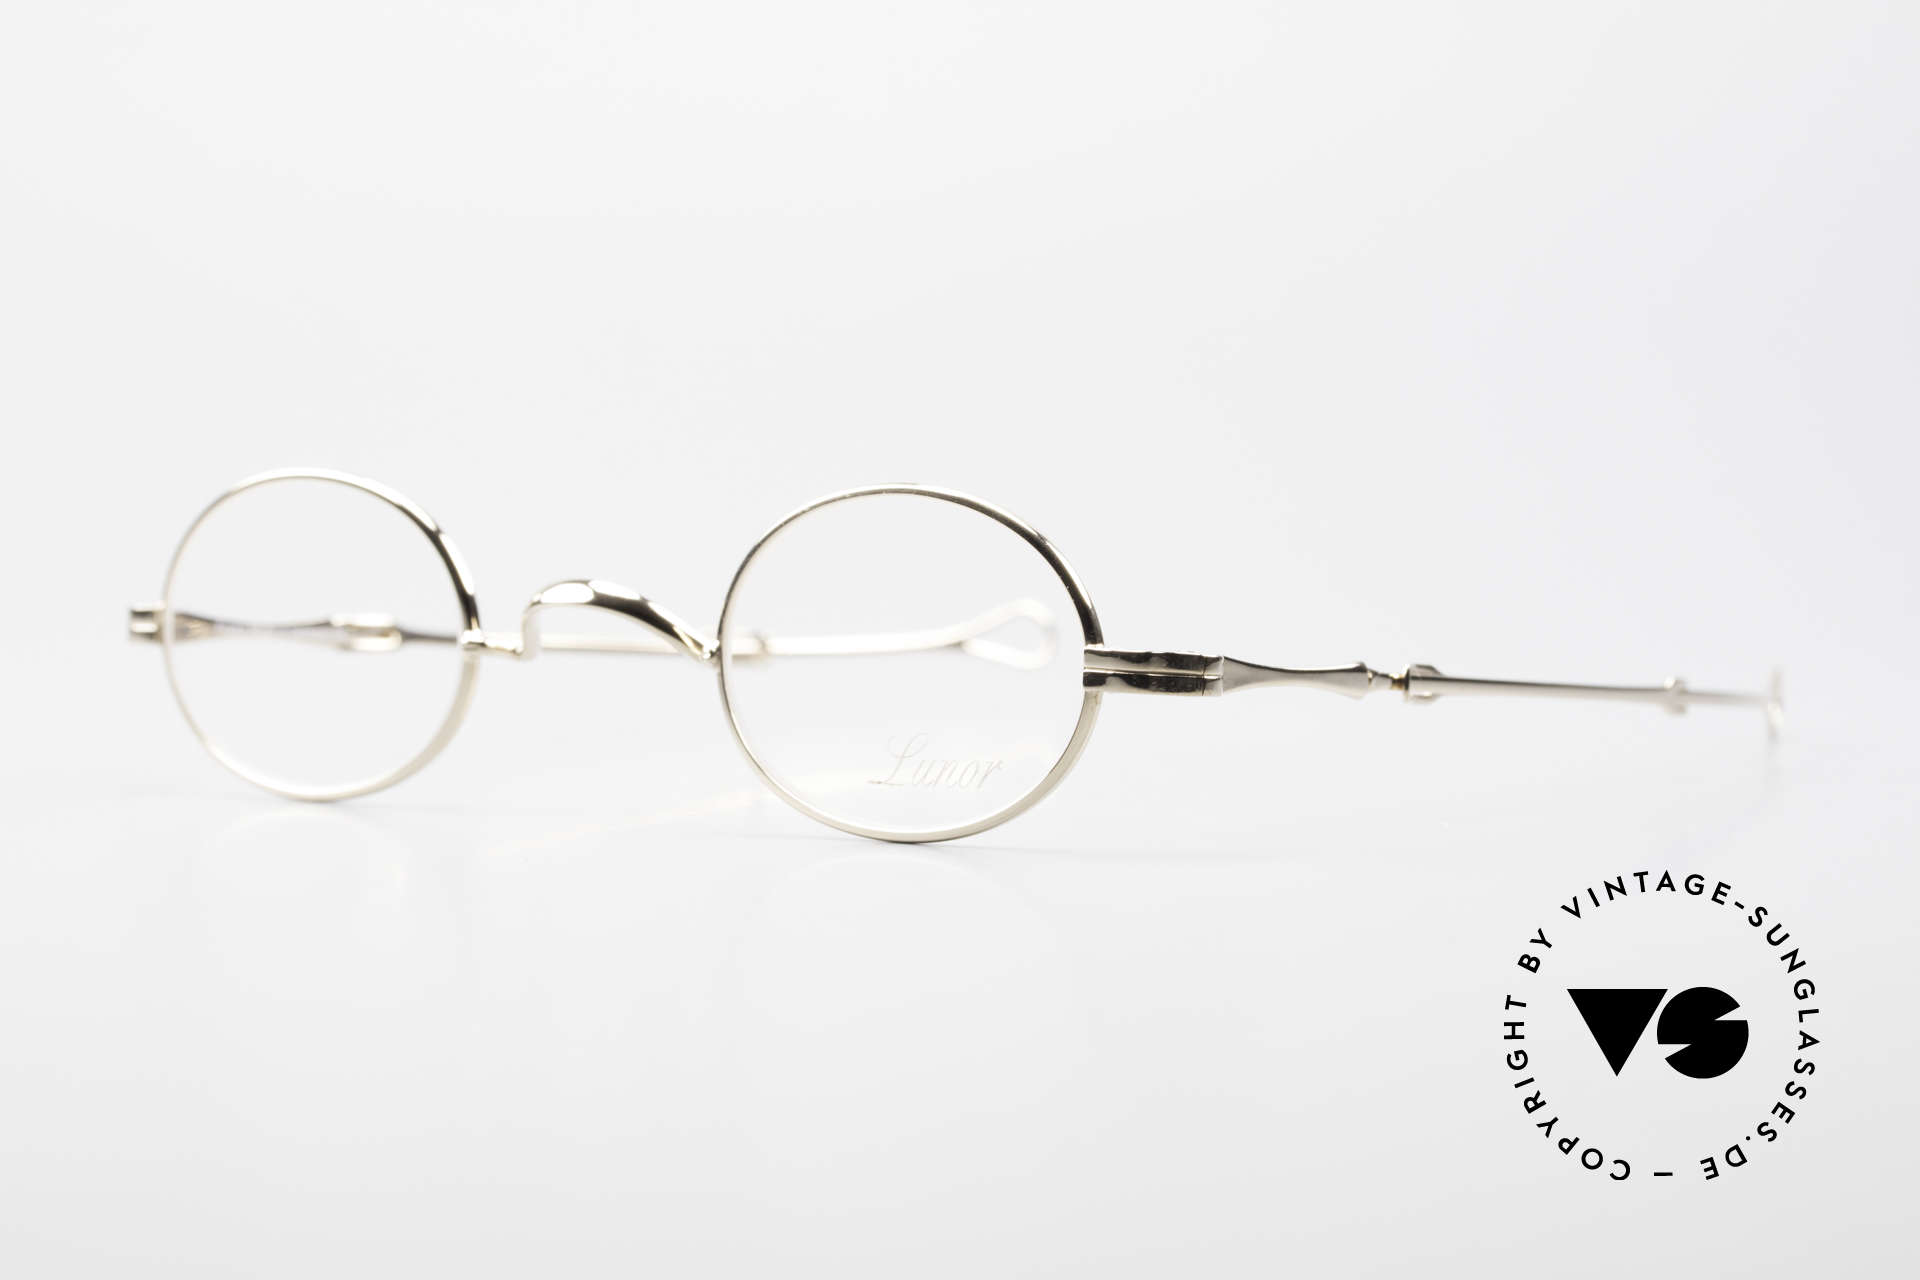 Lunor I 04 Telescopic XS Oval Glasses Slide Temples, model I 04 = size 37°26, temple length: 118mm - 155 mm, Made for Men and Women